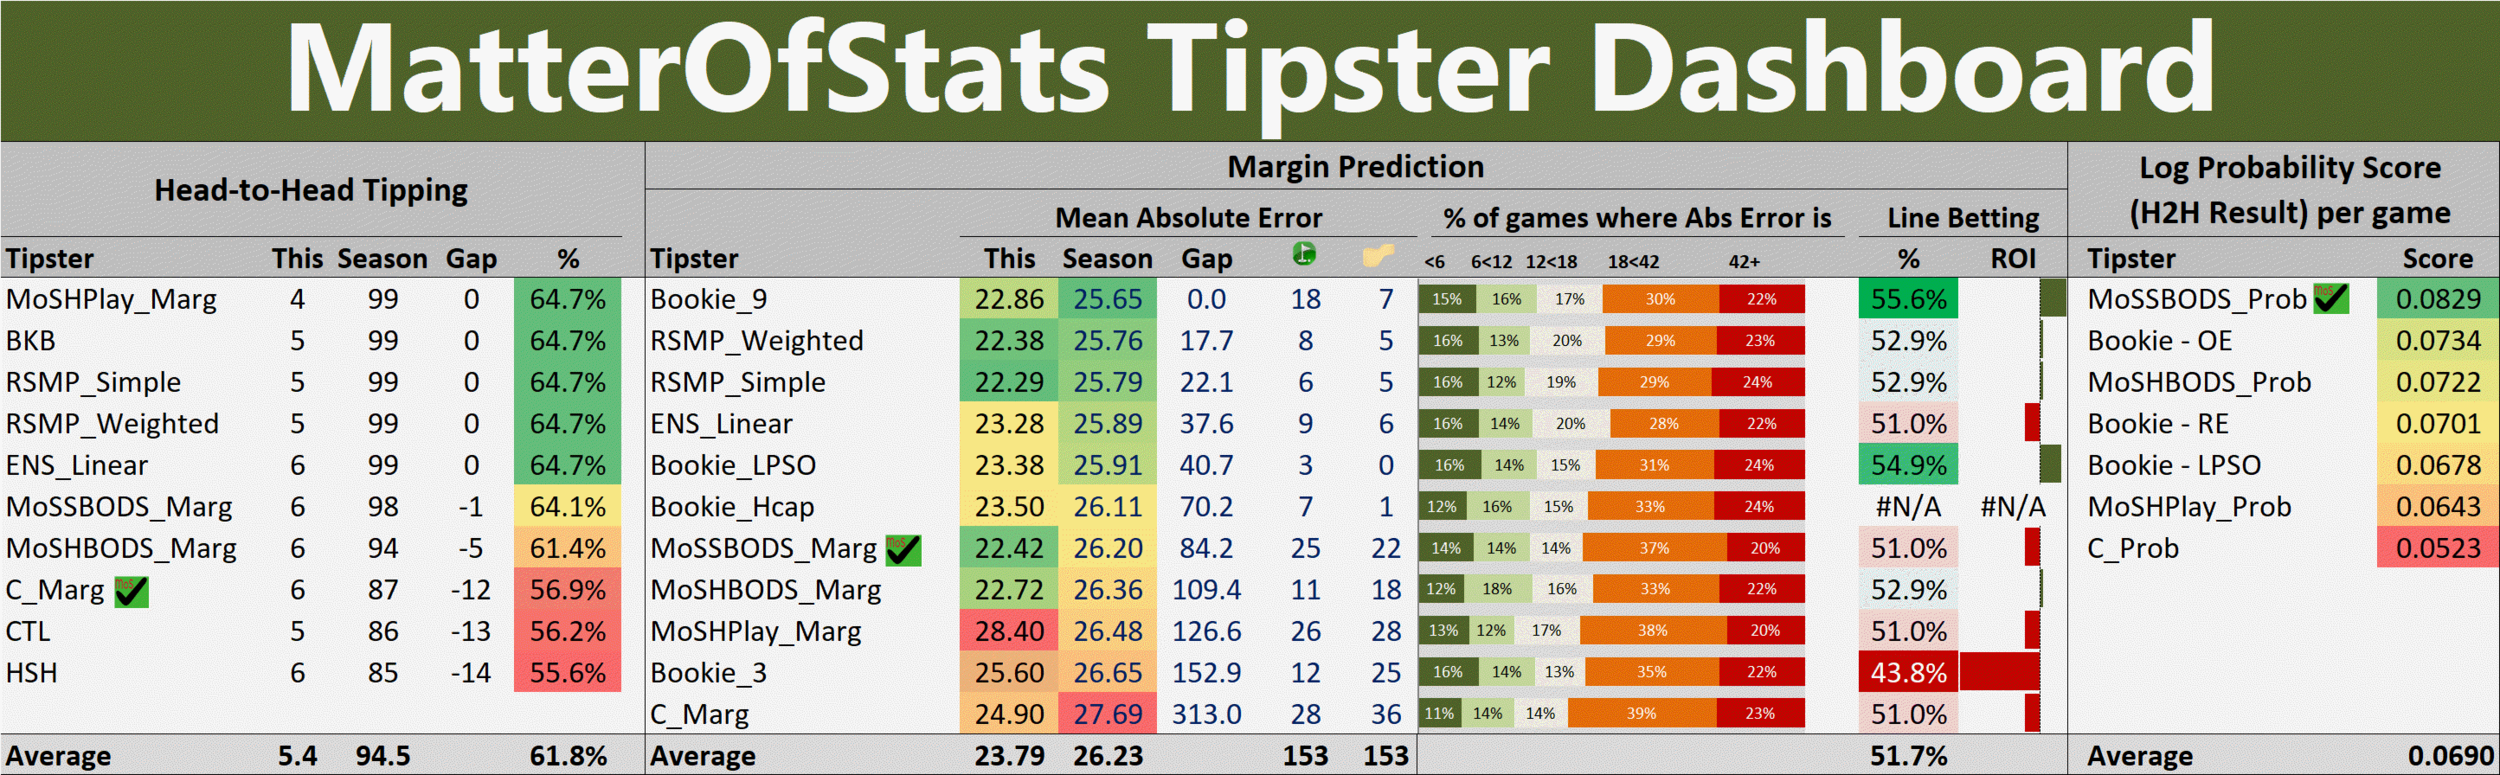 R18 - Tipster Dashboard.png